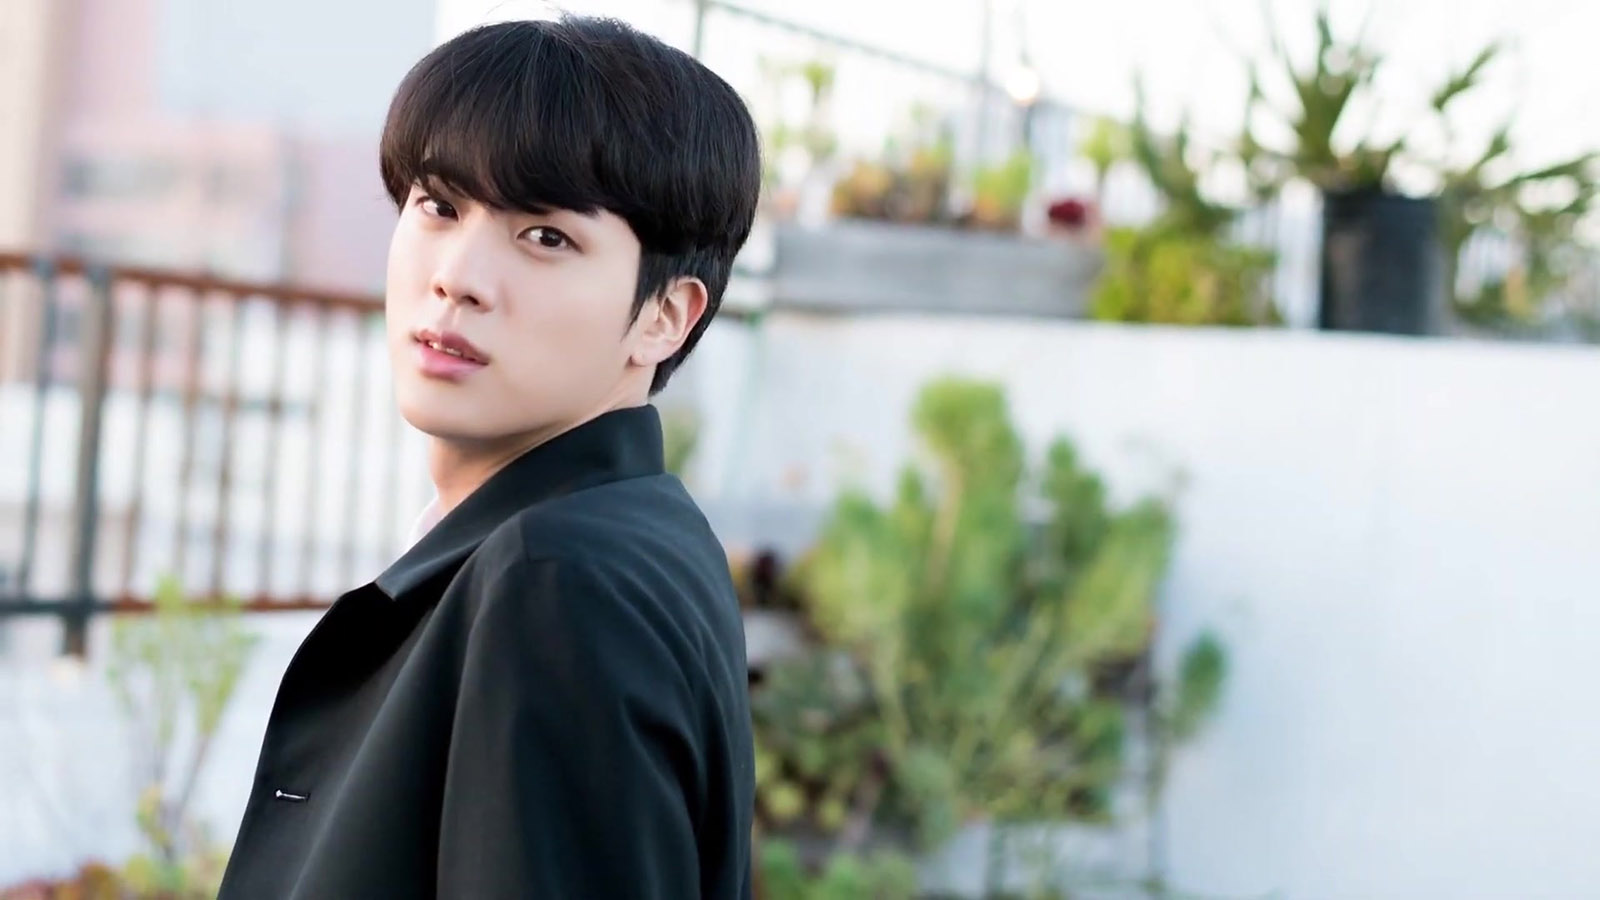 Get To Know Bts S Jin His Age Birthday Songs And More Film Daily